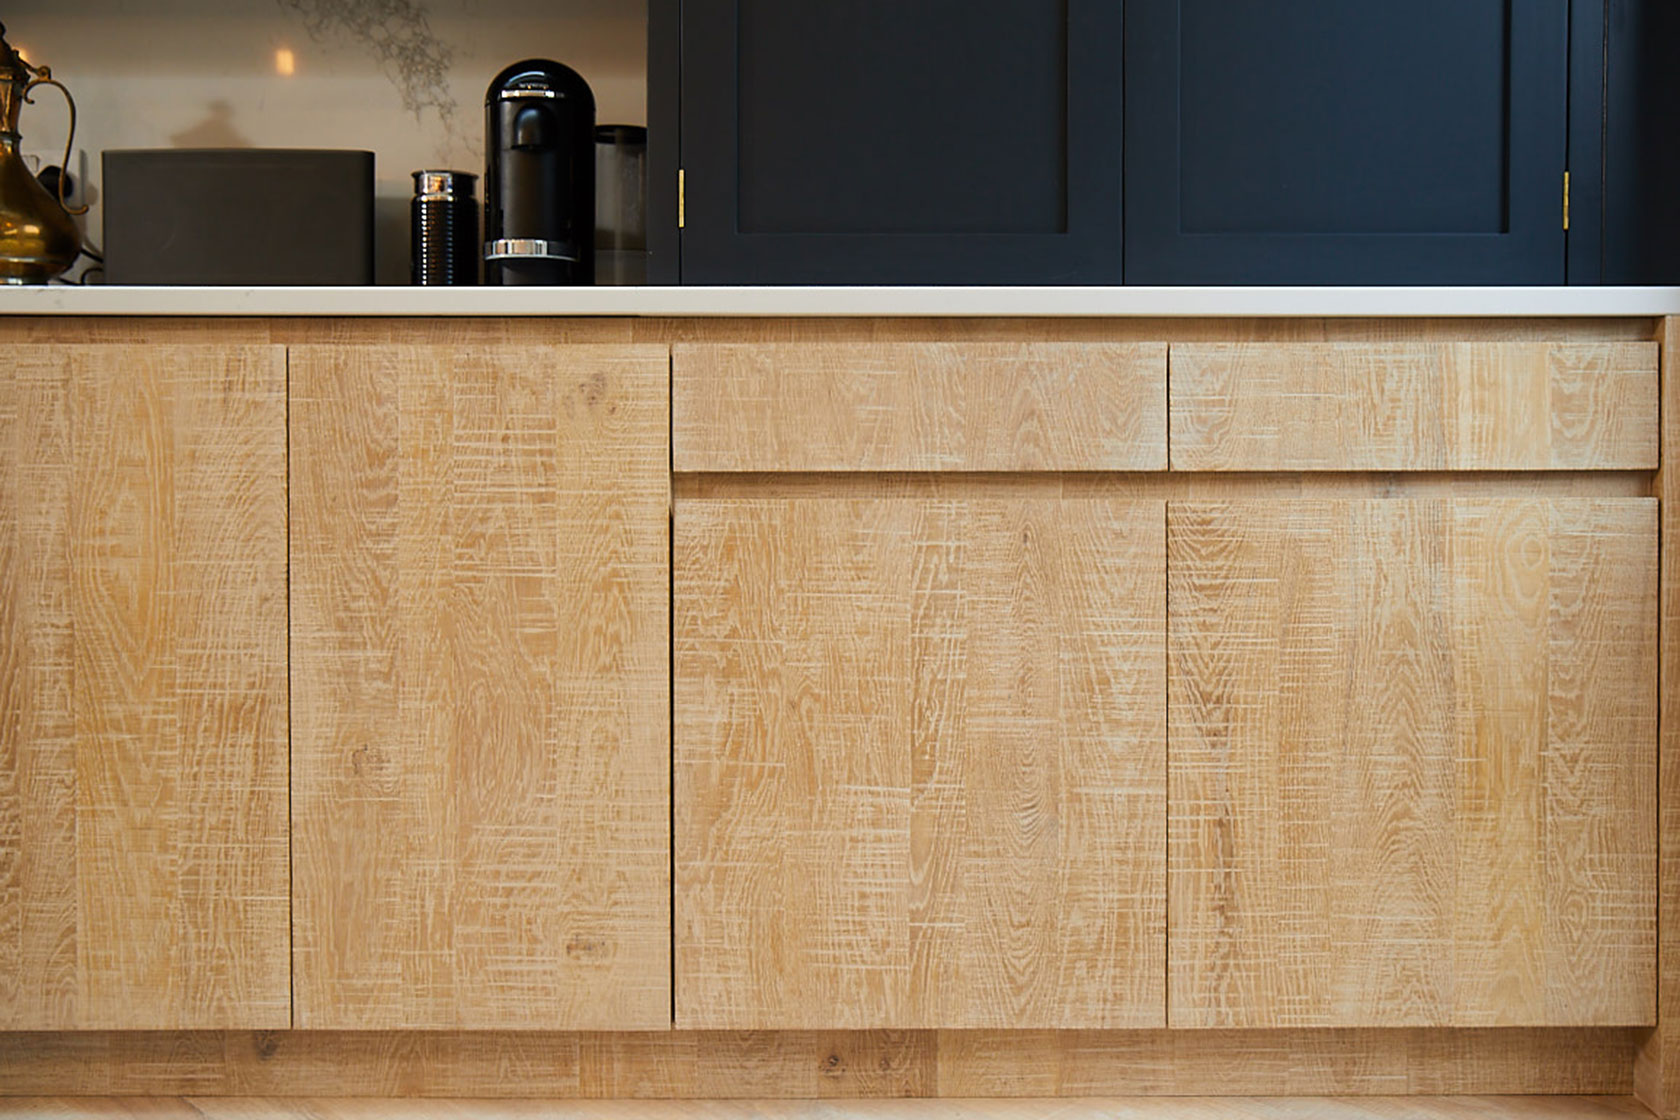 Limed oak kitchen base units with integrated bin for recycling and Caesarstone worktop